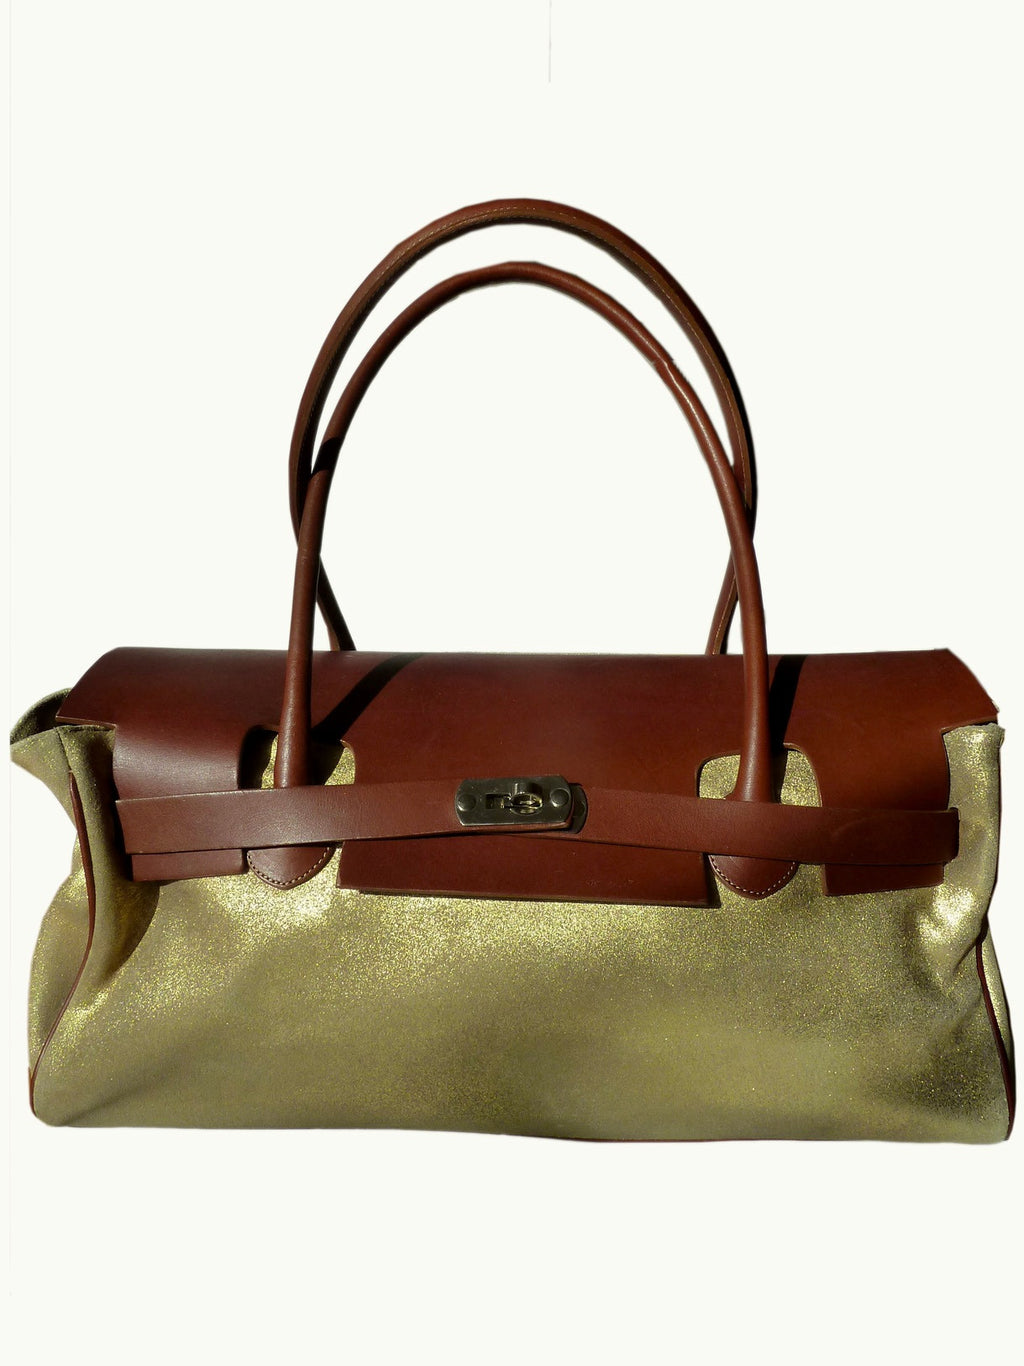 Chatona Large Satchel Gold Suede And Saddle Leather